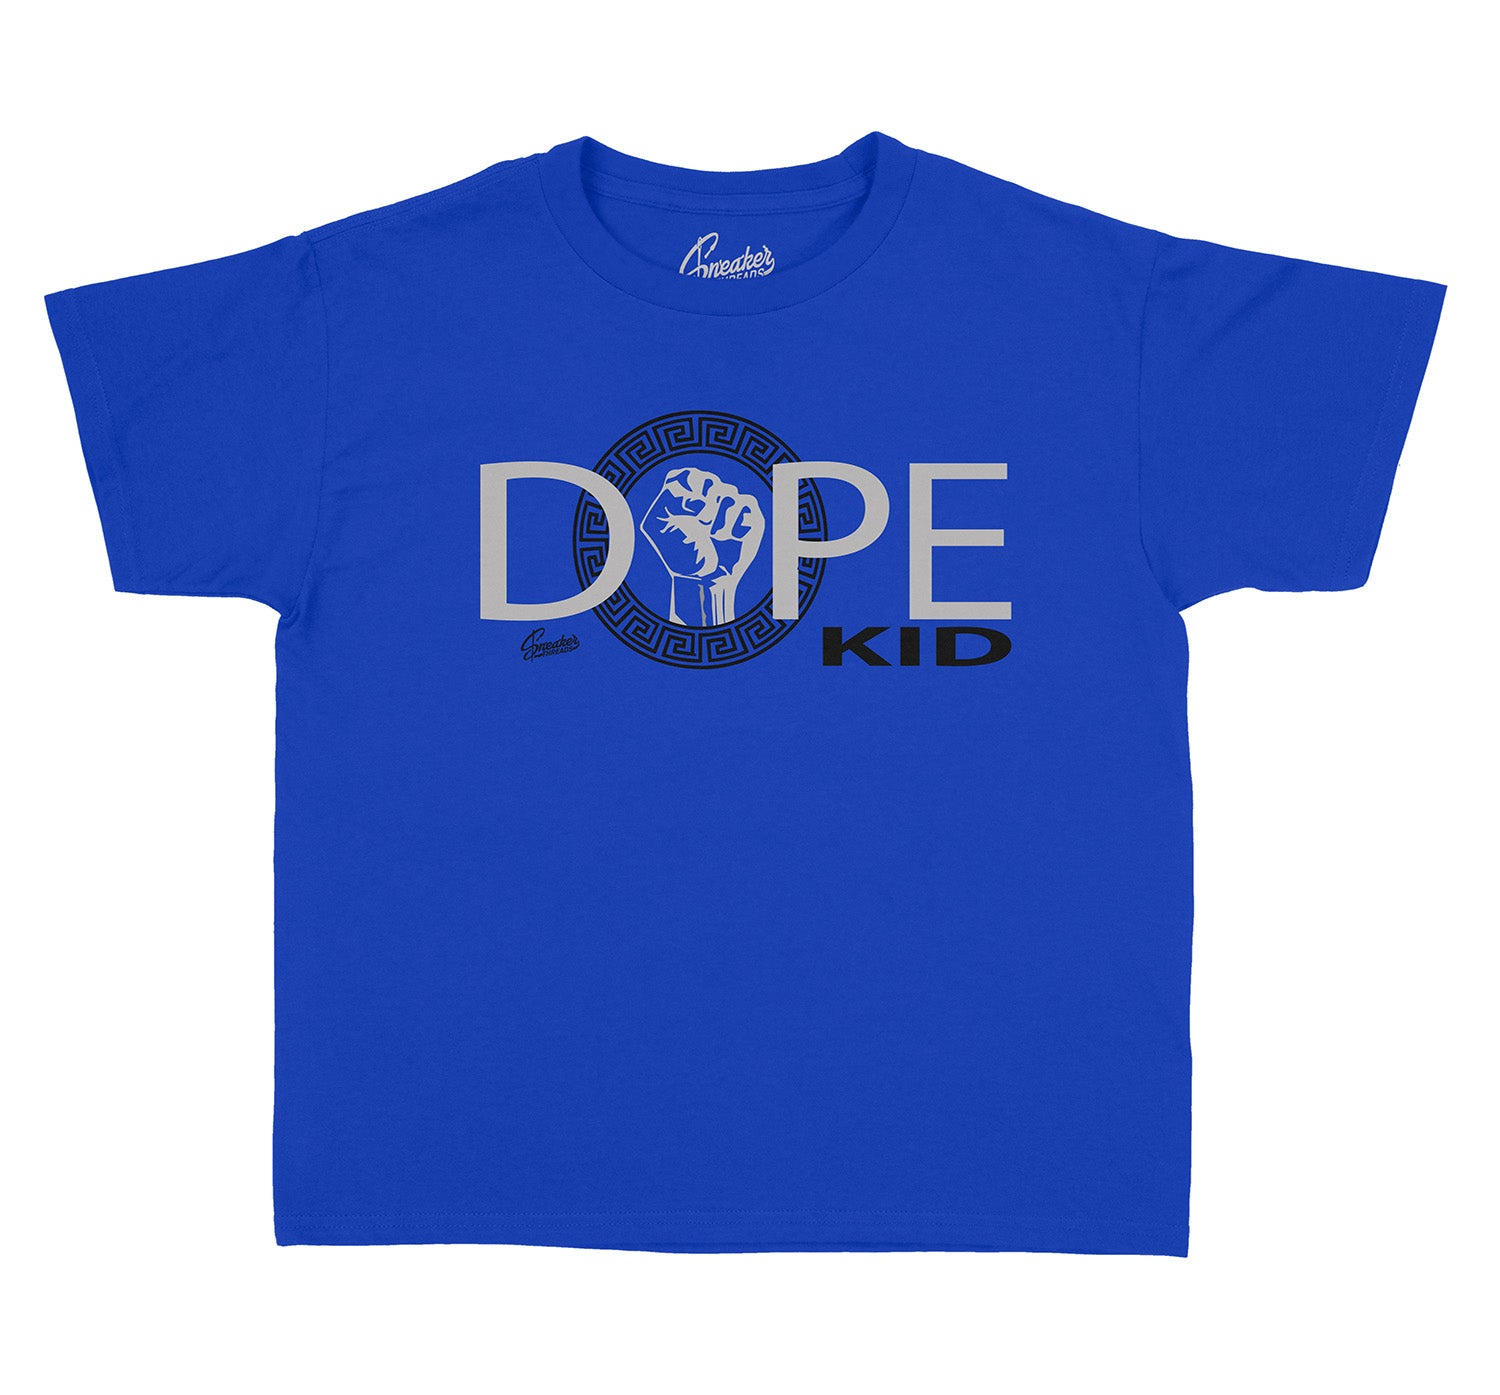 Dopest kids shirts to match Jordan 12 Game Royal